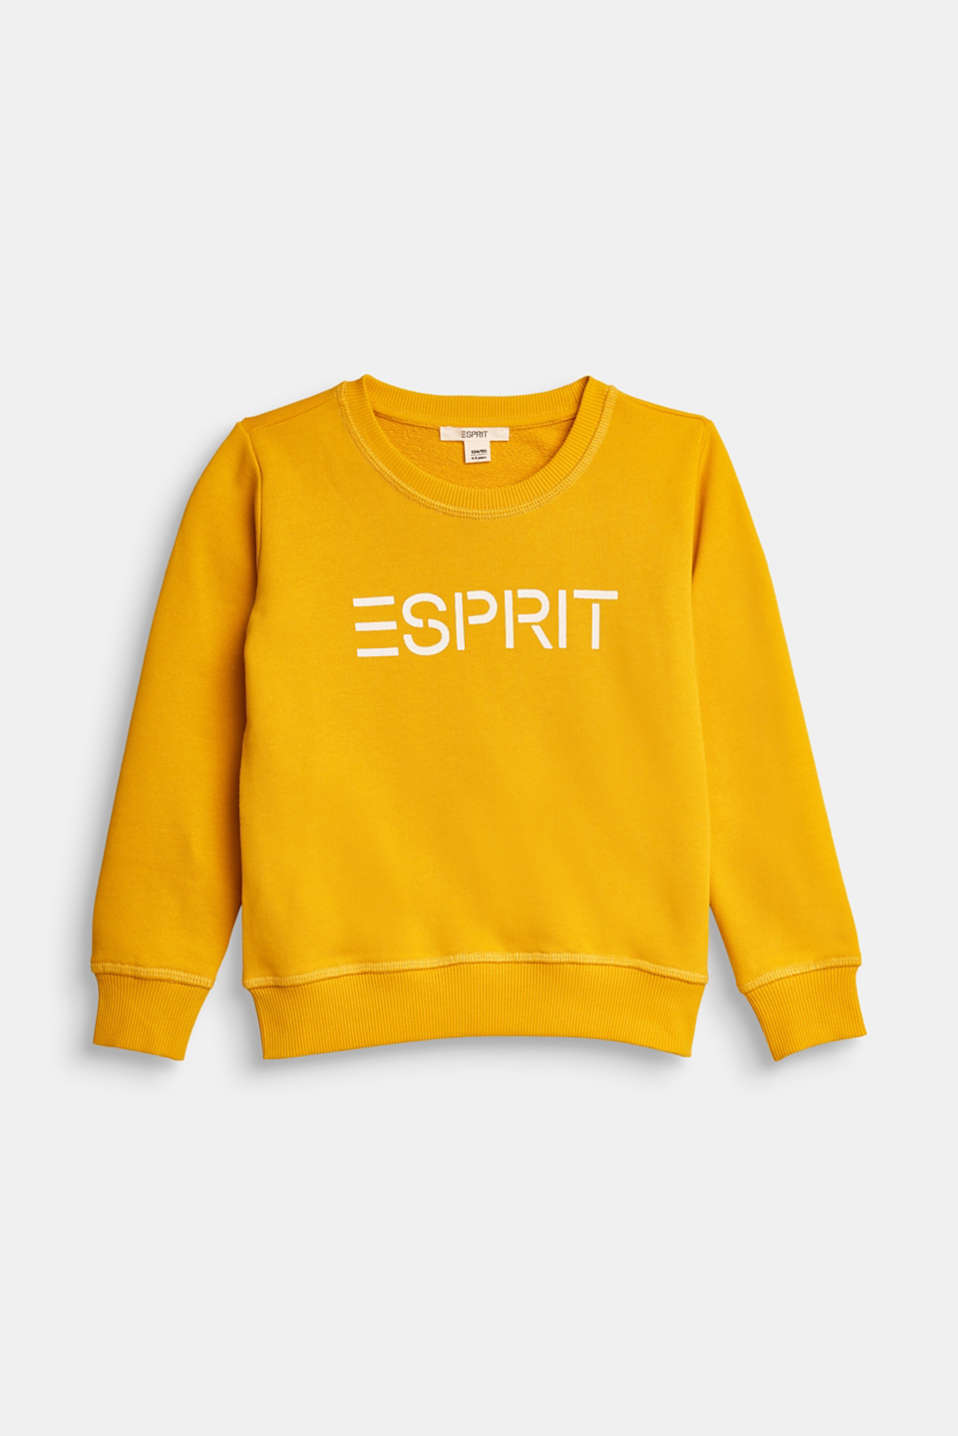 Esprit - Sweat-shirt à logo, 100 %coton